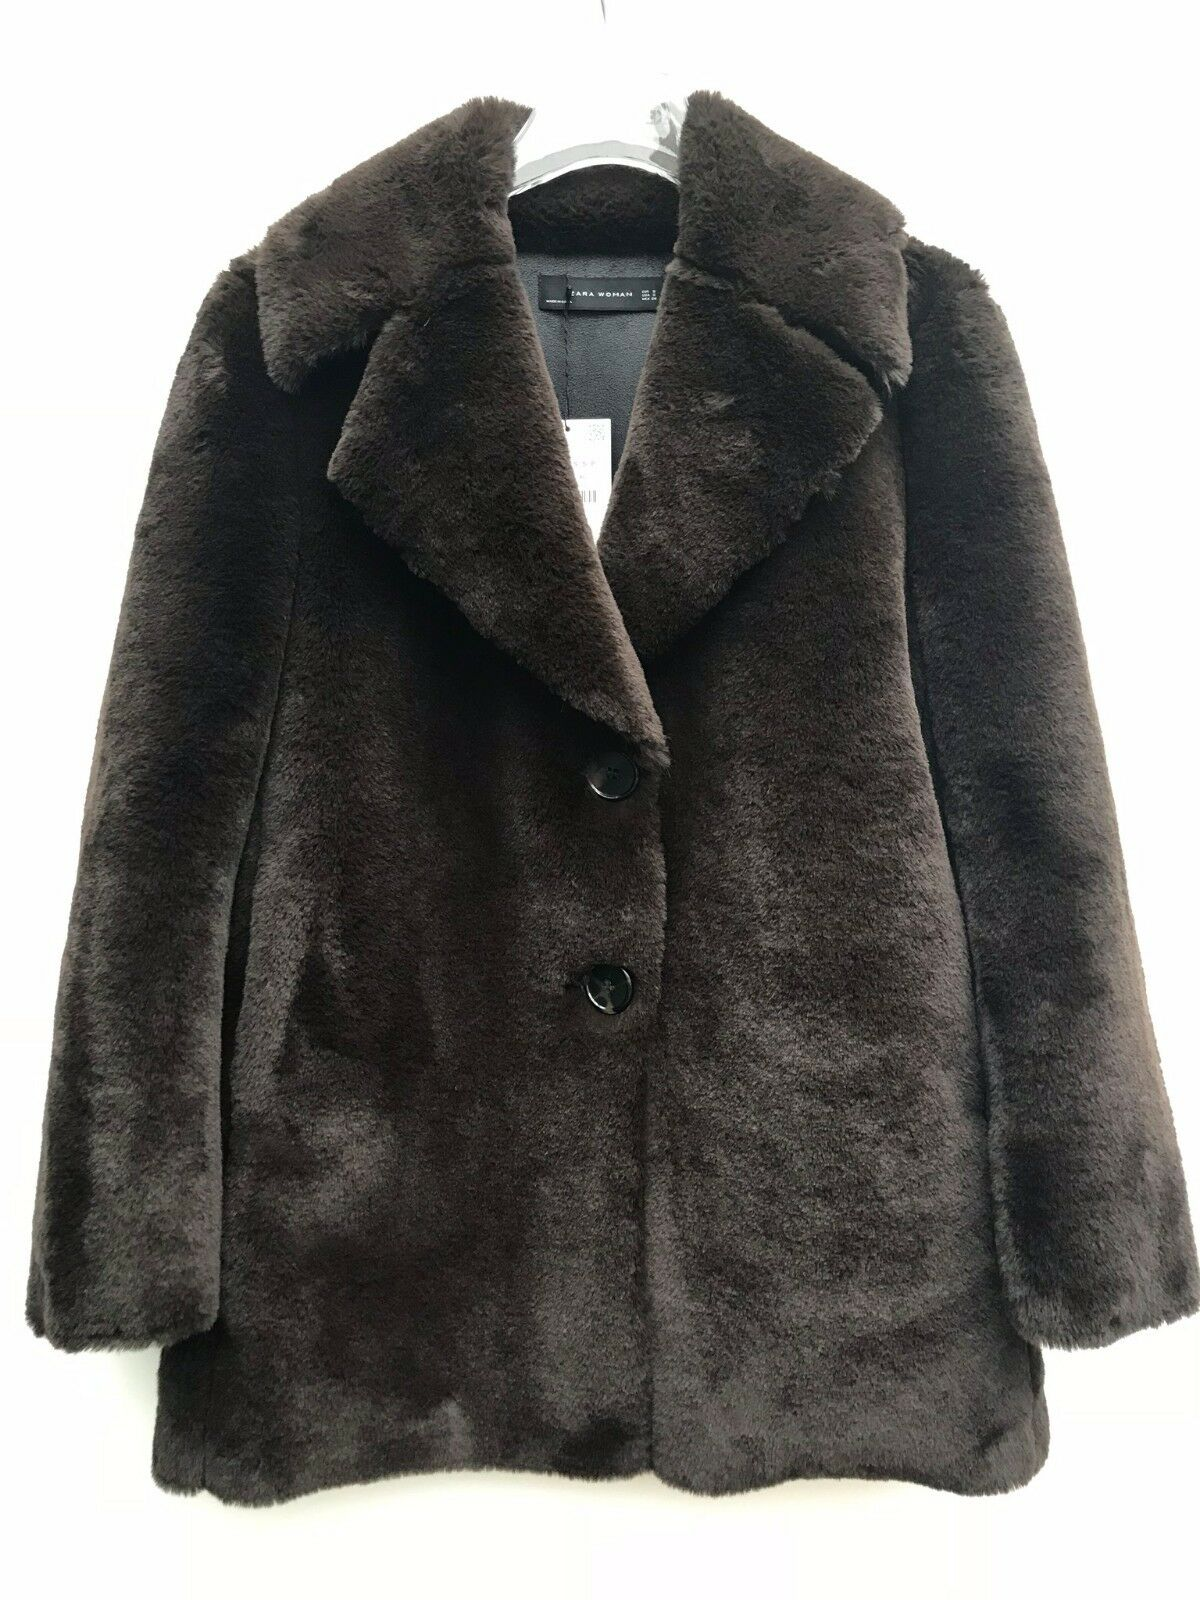 ZARA BROWN FAUX FUR COAT SIZE S M REF 4360 041